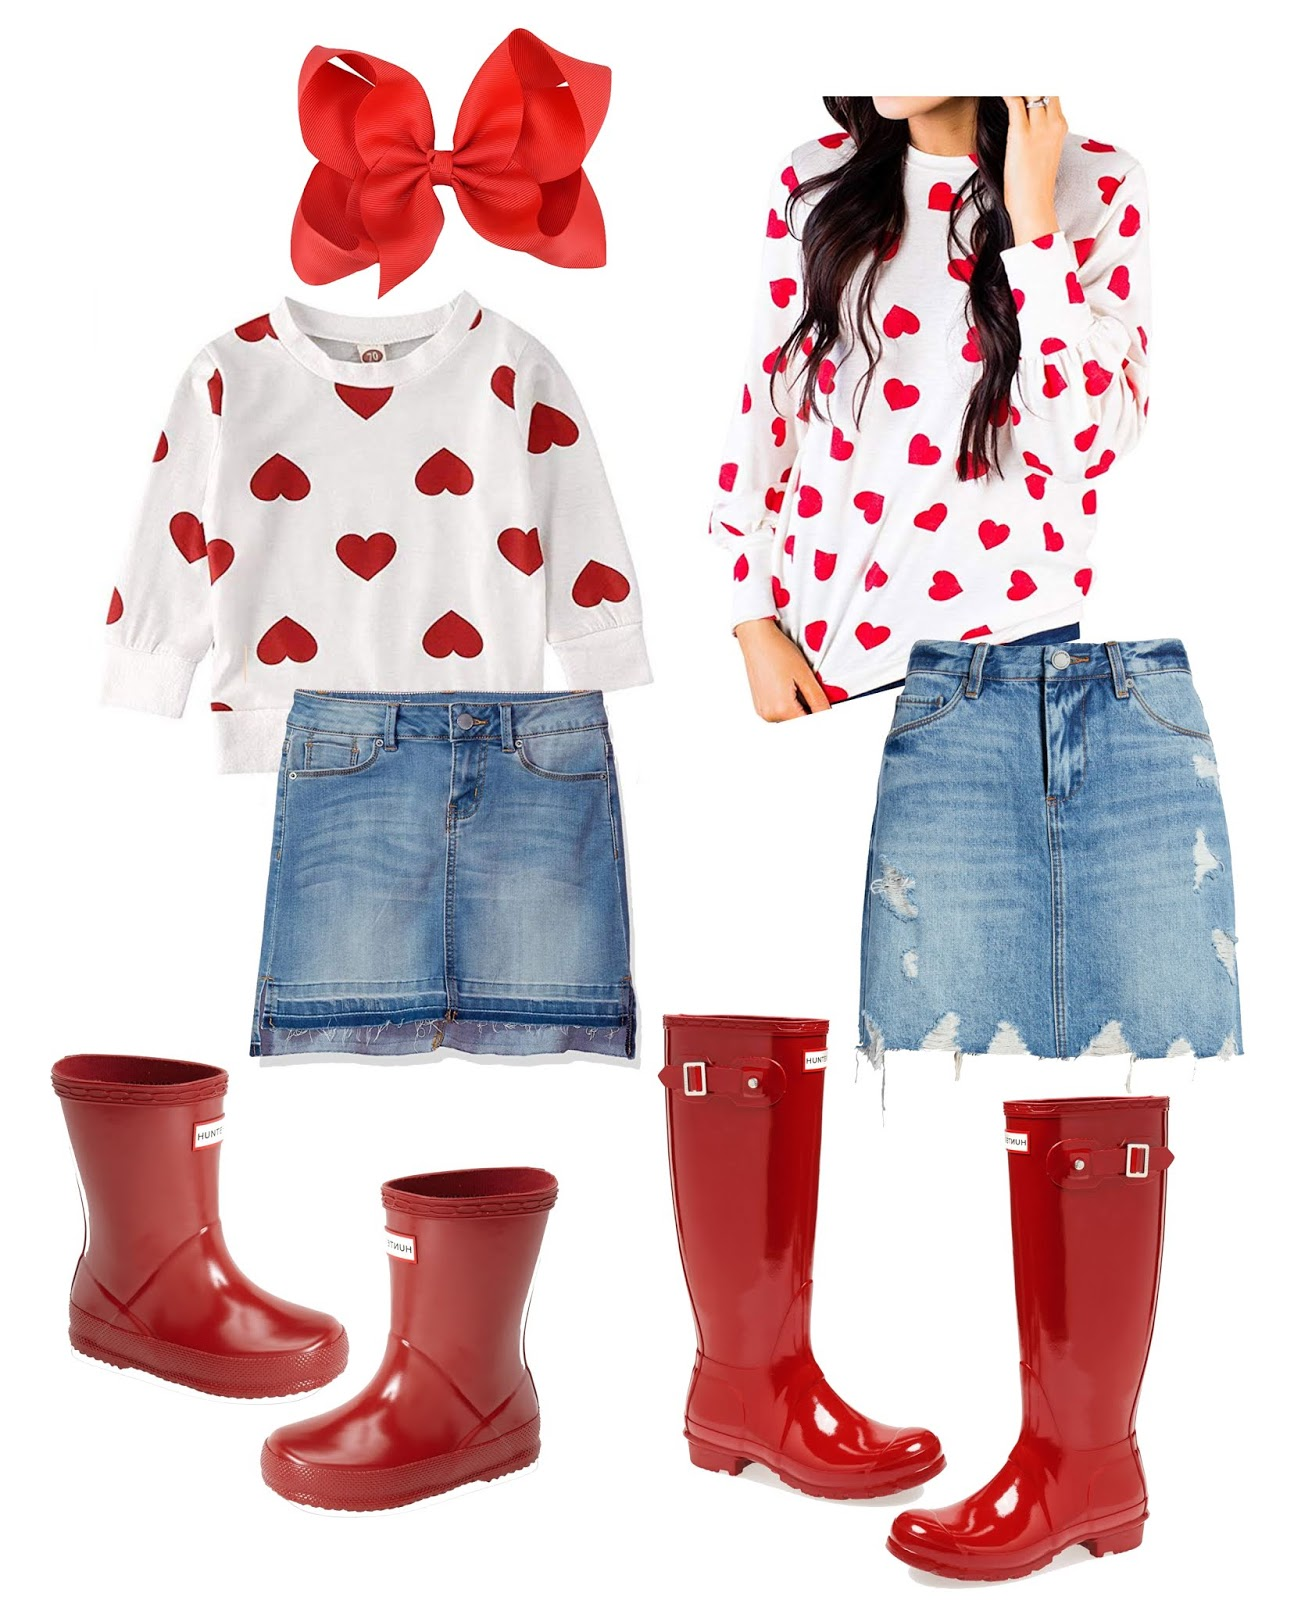 Five Head to Toe Outfits for Valentine's Day - Something Delightful Blog #ValentinesDay #Hearts #VDay #ValentinesOutfit #Womensfashion #KidsFashion